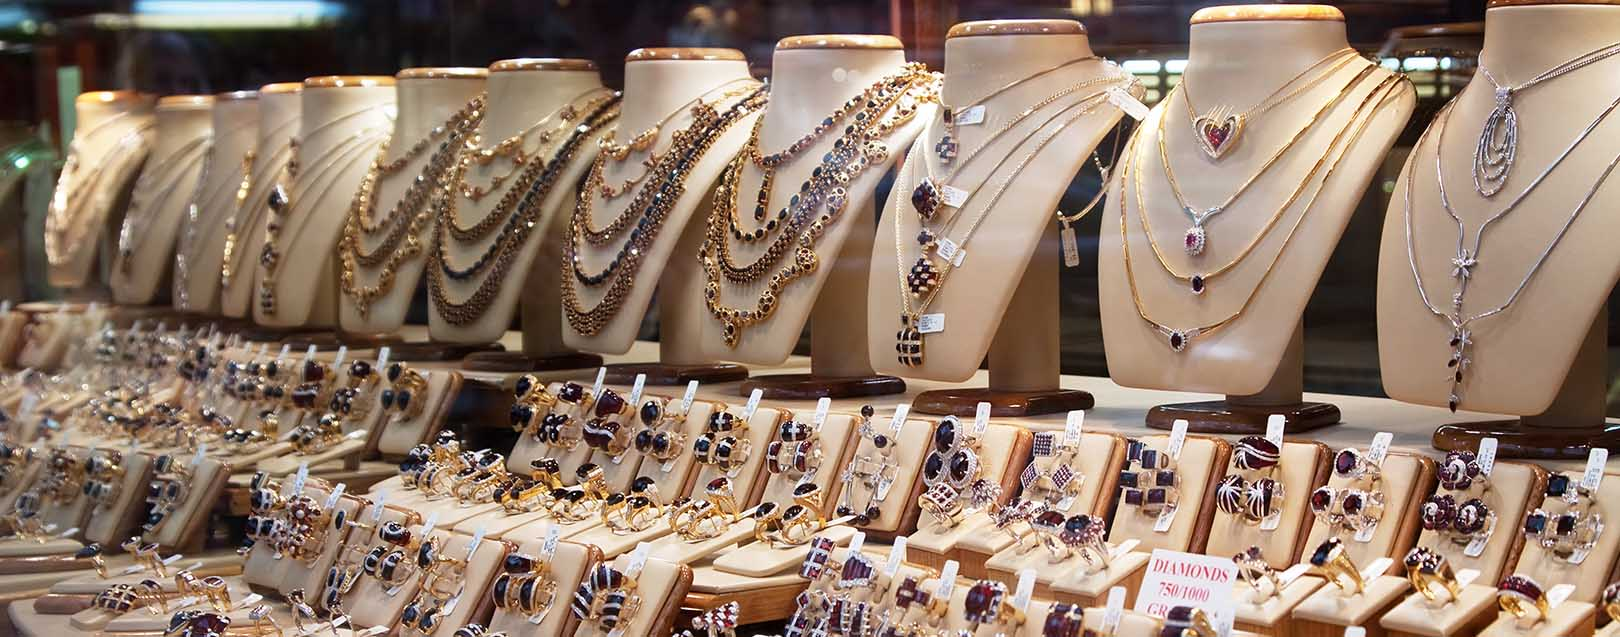 India's silver jewellery exports jump 4-fold